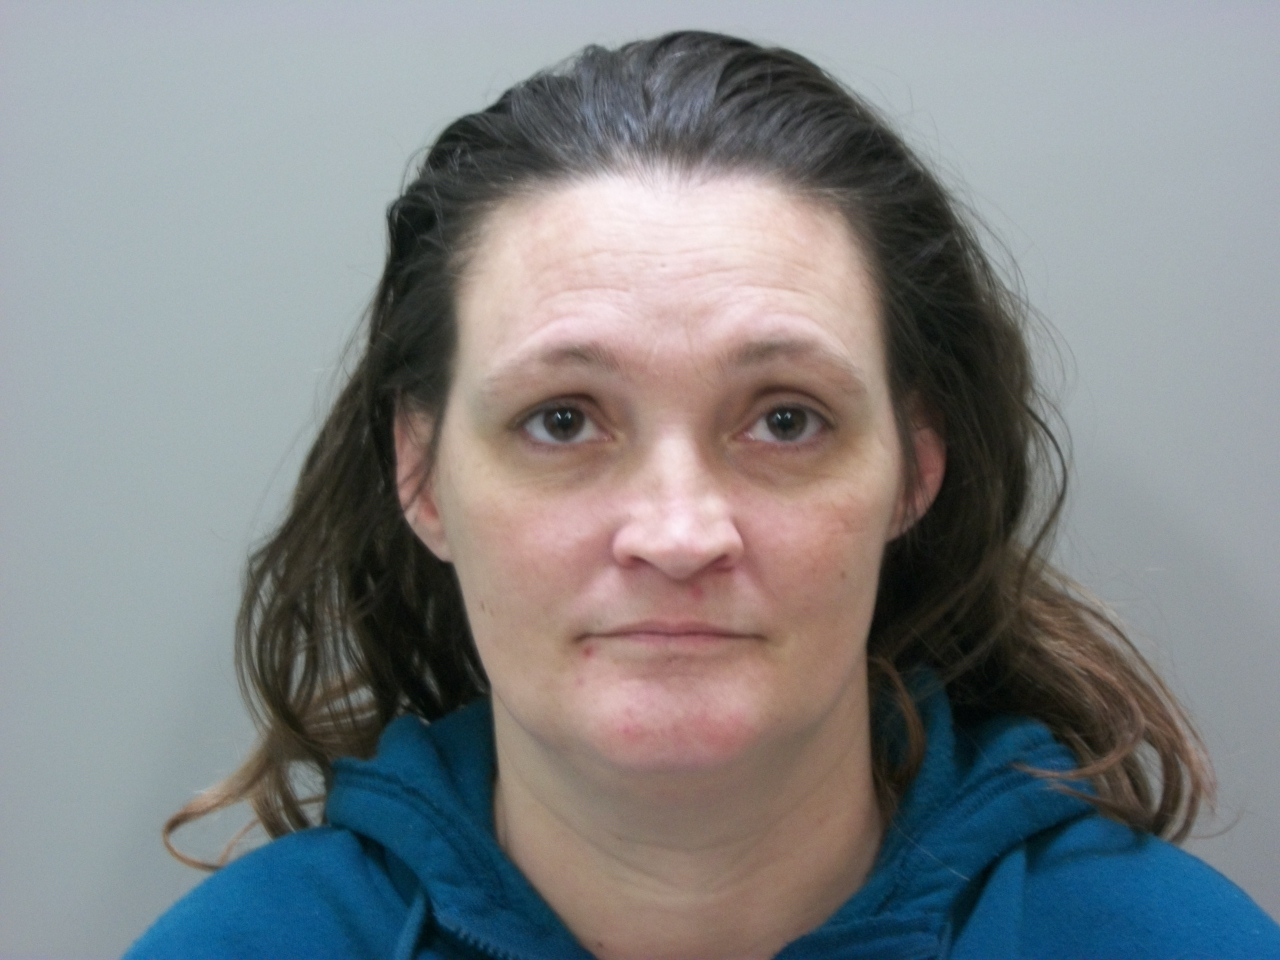 CRYSTAL DAWN STANCLIFF (WCSO)